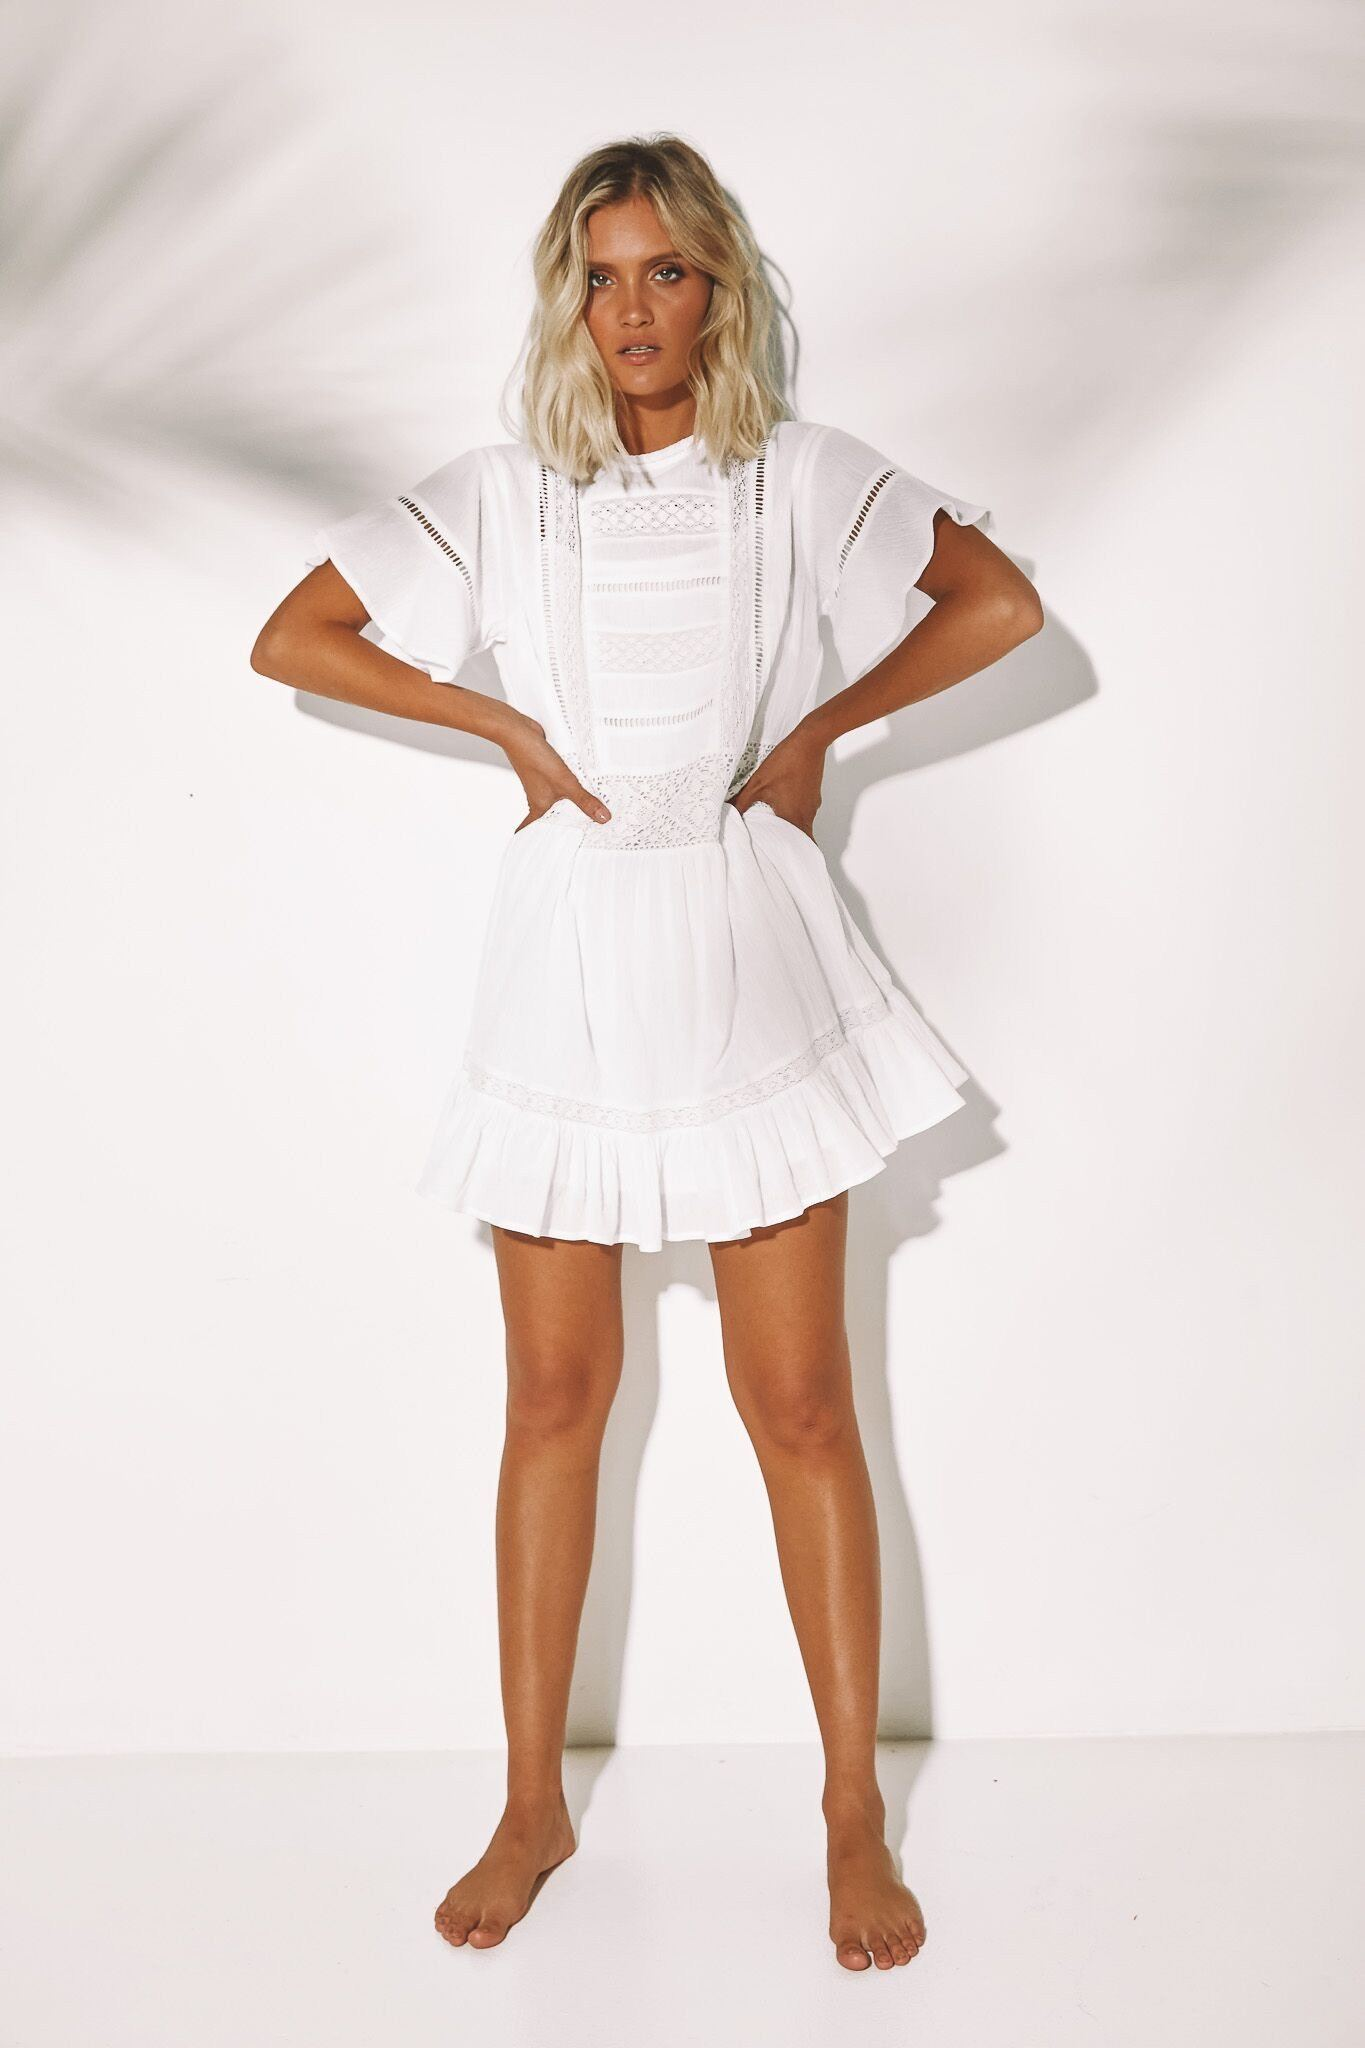 Wing Mini Dress - White SNDYS